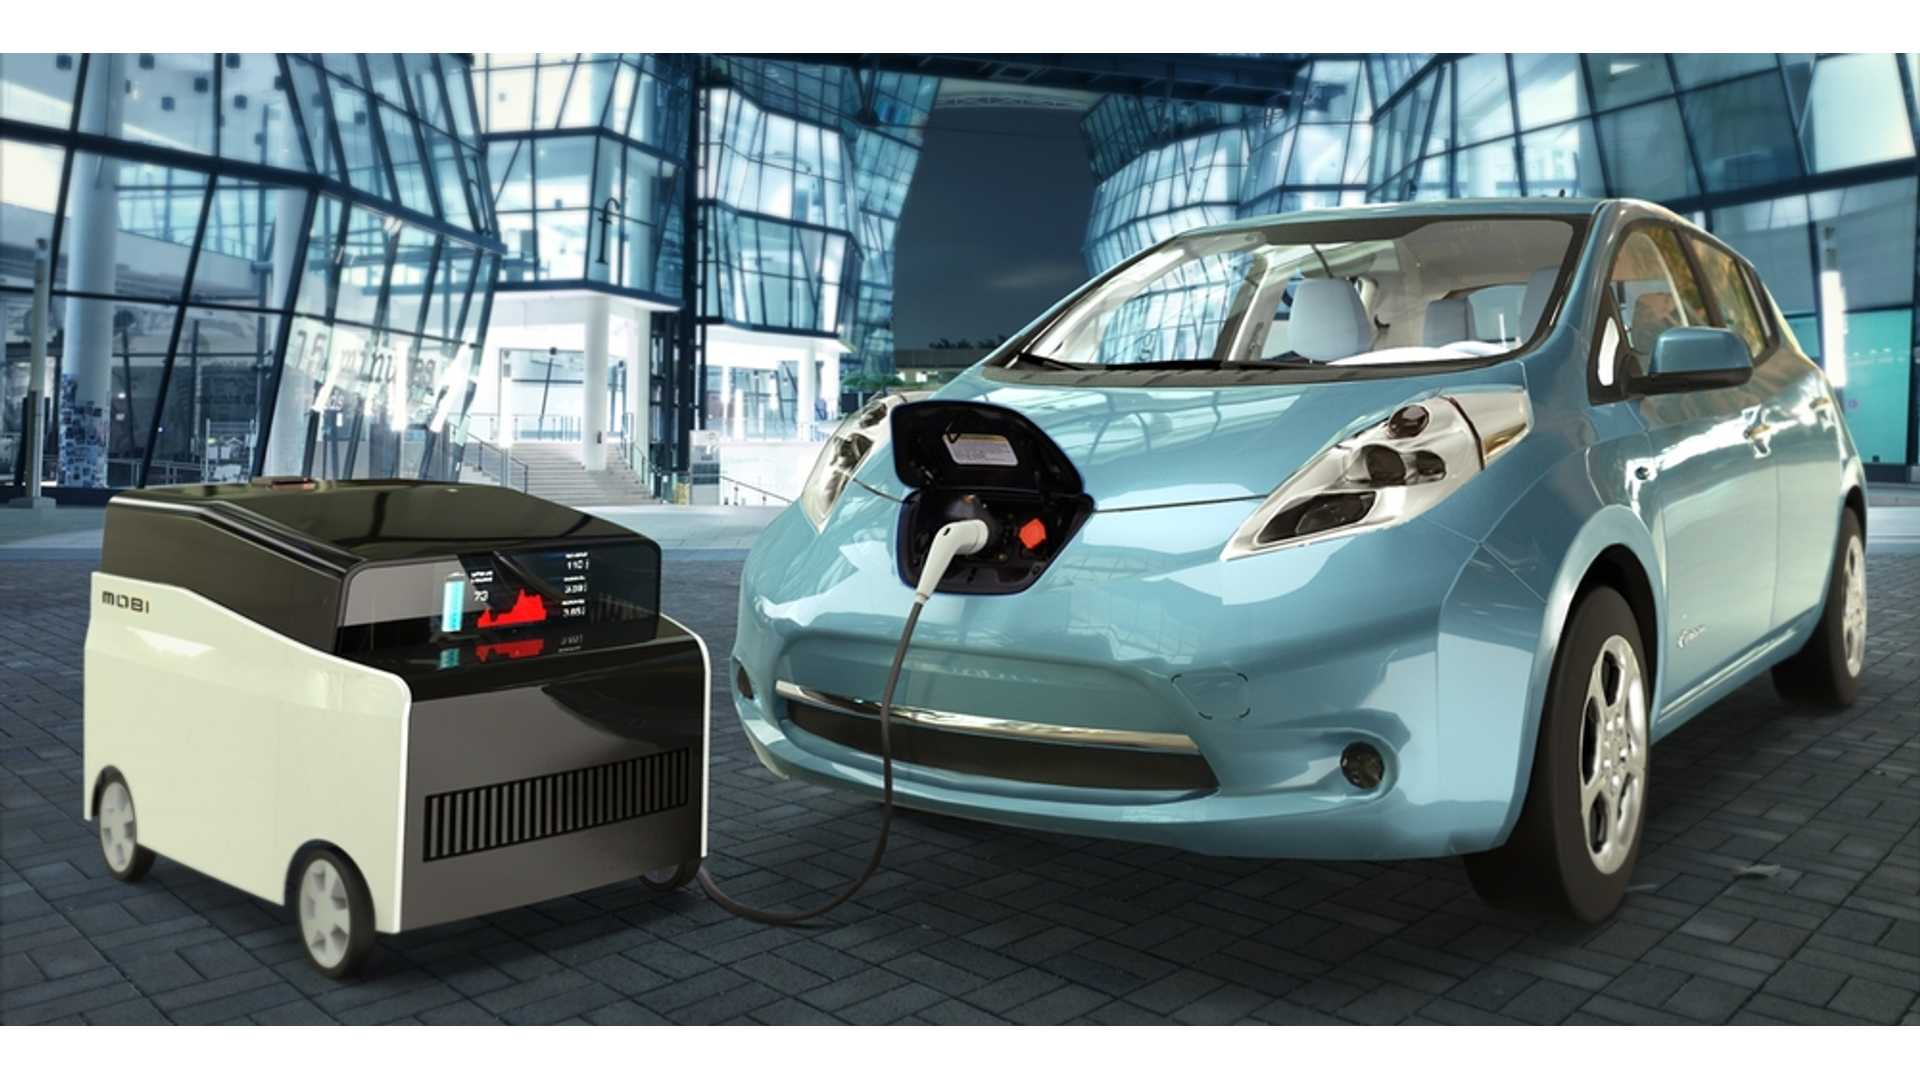 Freewire Mobi Charger Puts Nissan Leaf Batteries To Use In Mobile Charging Unit W Video